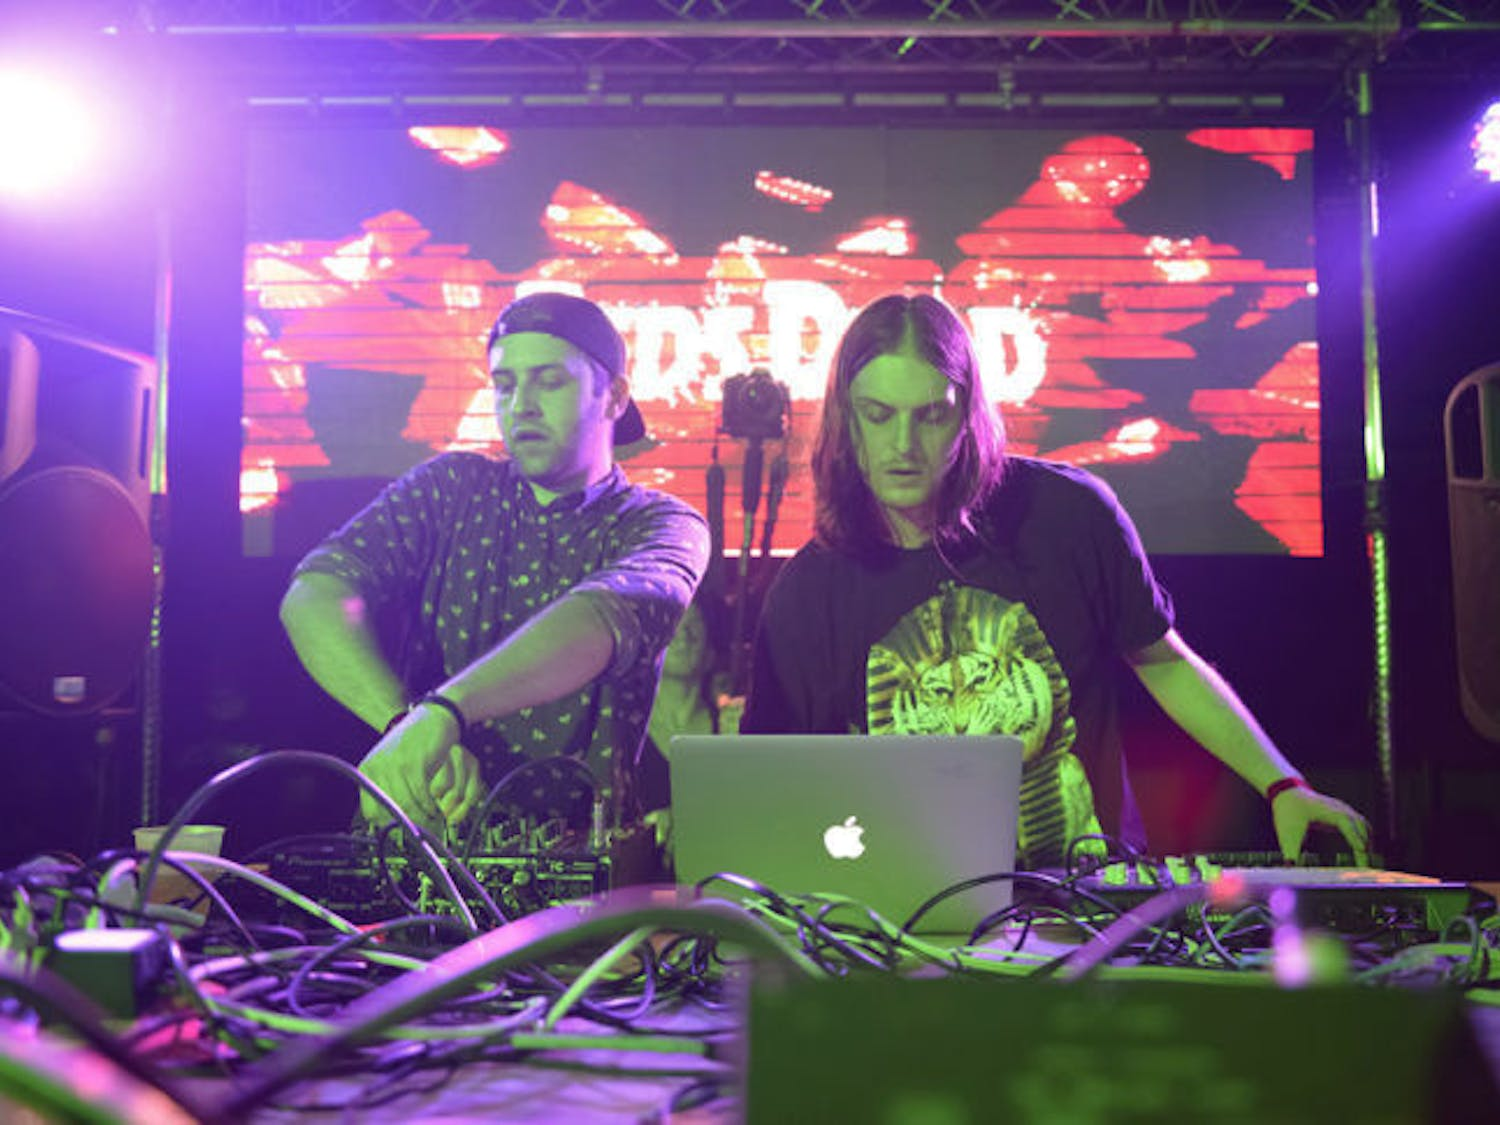 Canadian electronic music duo Zeds Dead performs Sept. 1 at Forum. The electronic dance music industry is under fire after the multi-day Electric Zoo Festival was shut down following two suspected drug overdoses that same day.